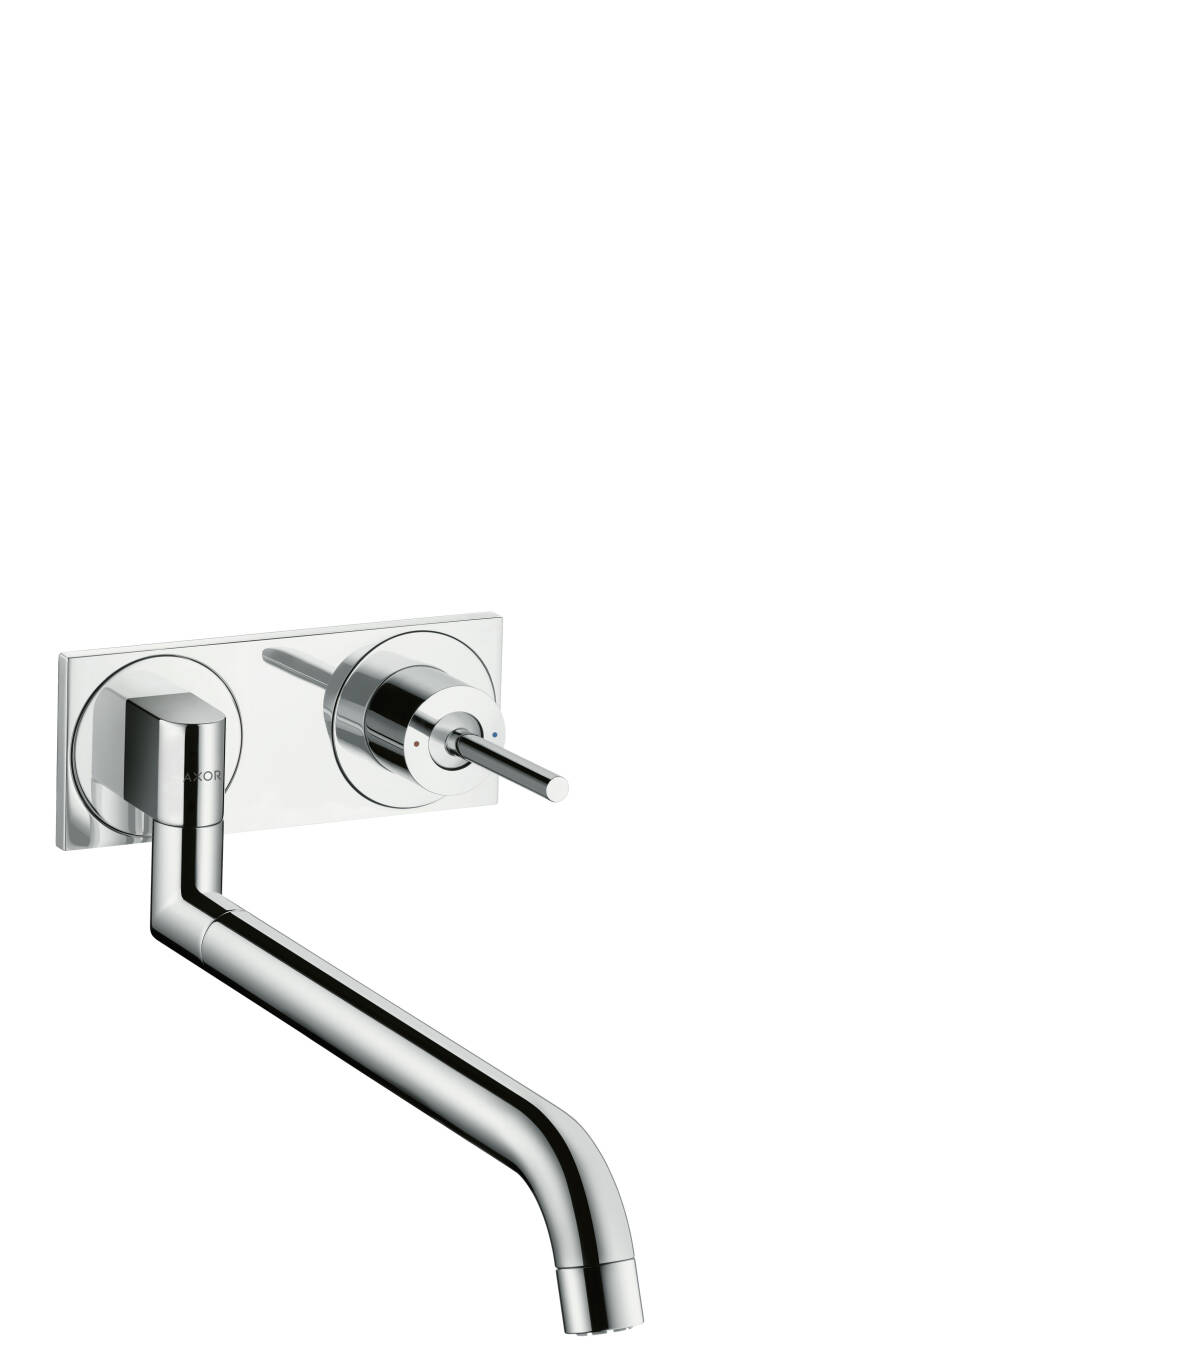 Single lever kitchen mixer for concealed installation wall-mounted, Stainless Steel Finish, 38815800